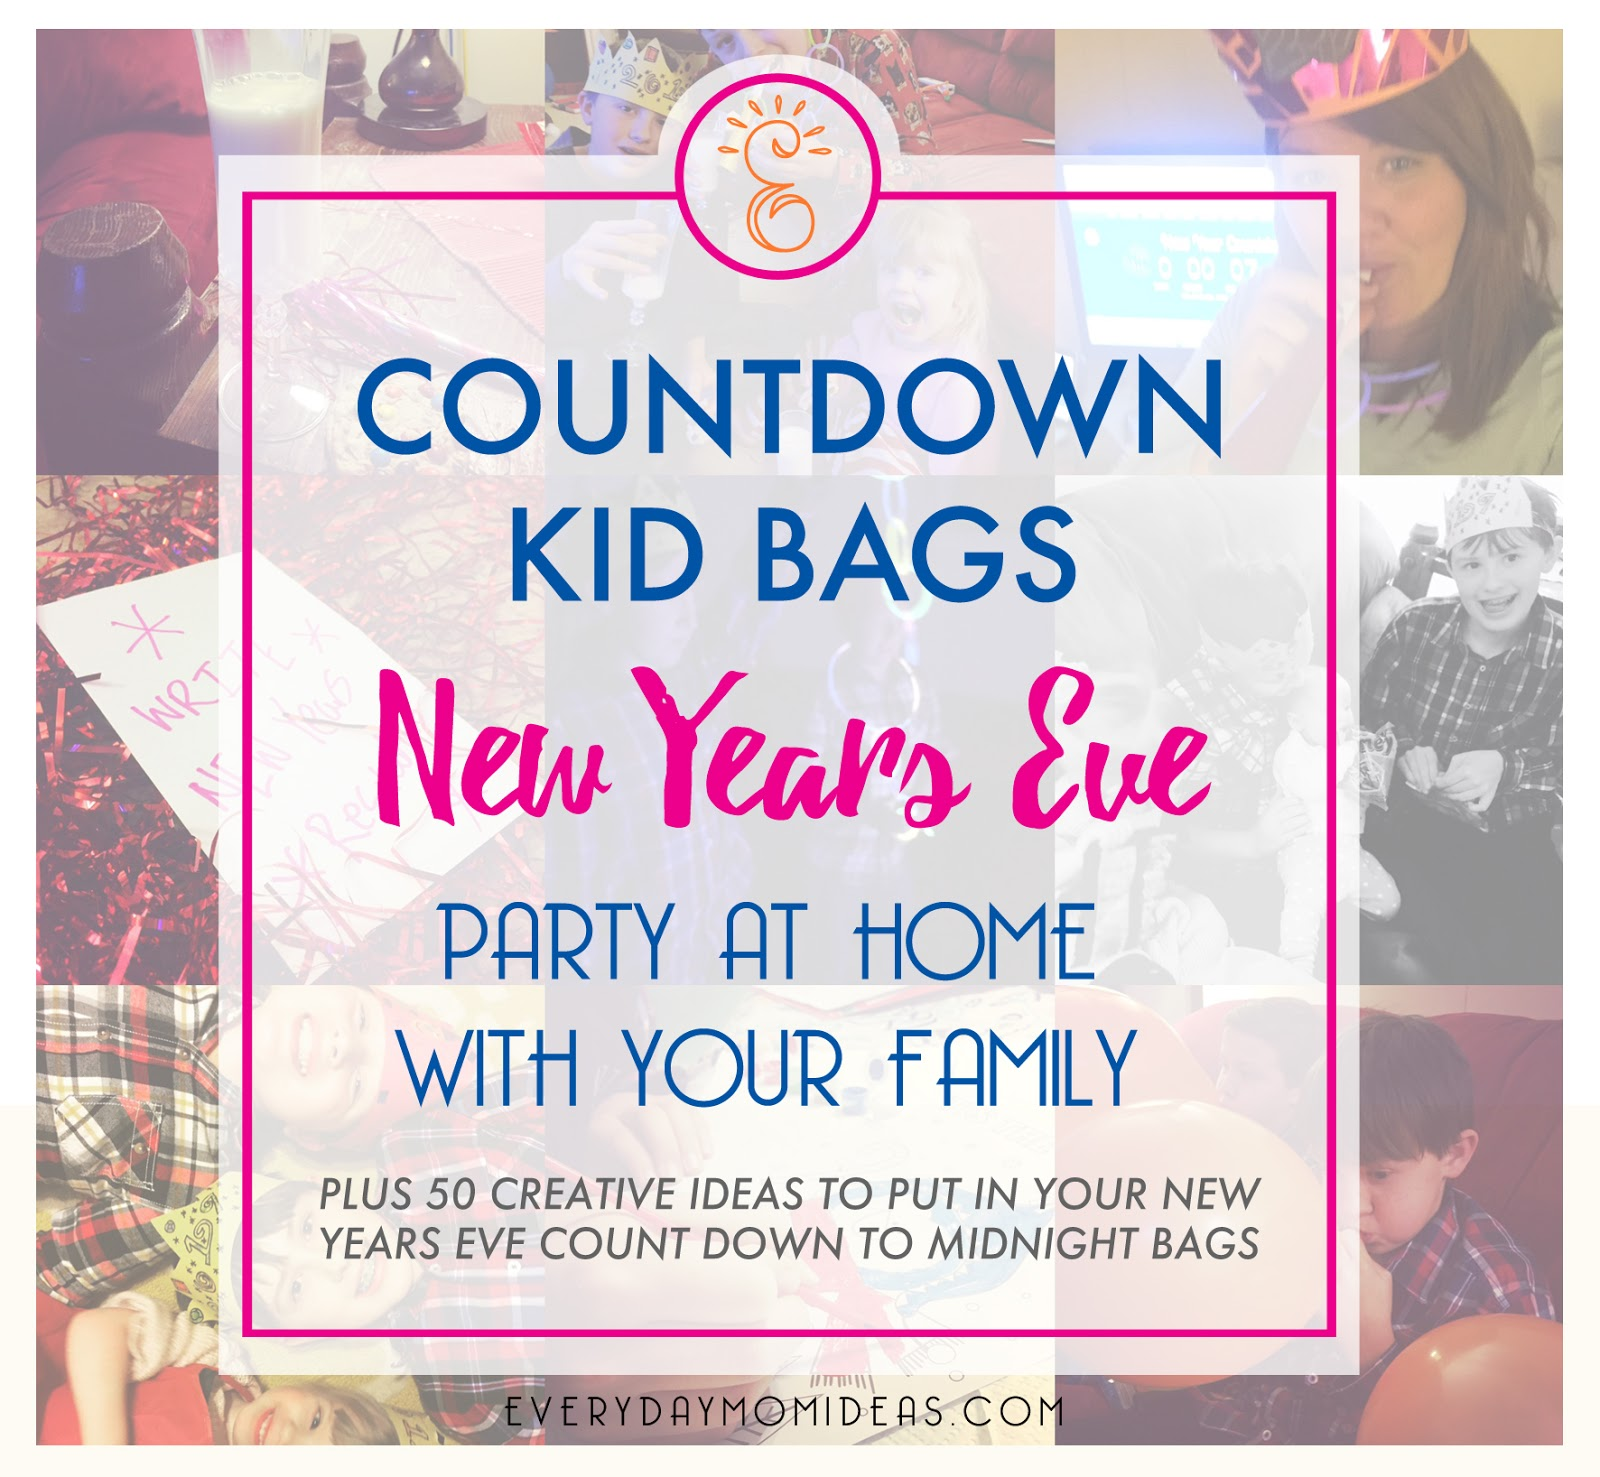 Kids Countdown Bags For New Years Eve - Everyday Mom Ideas